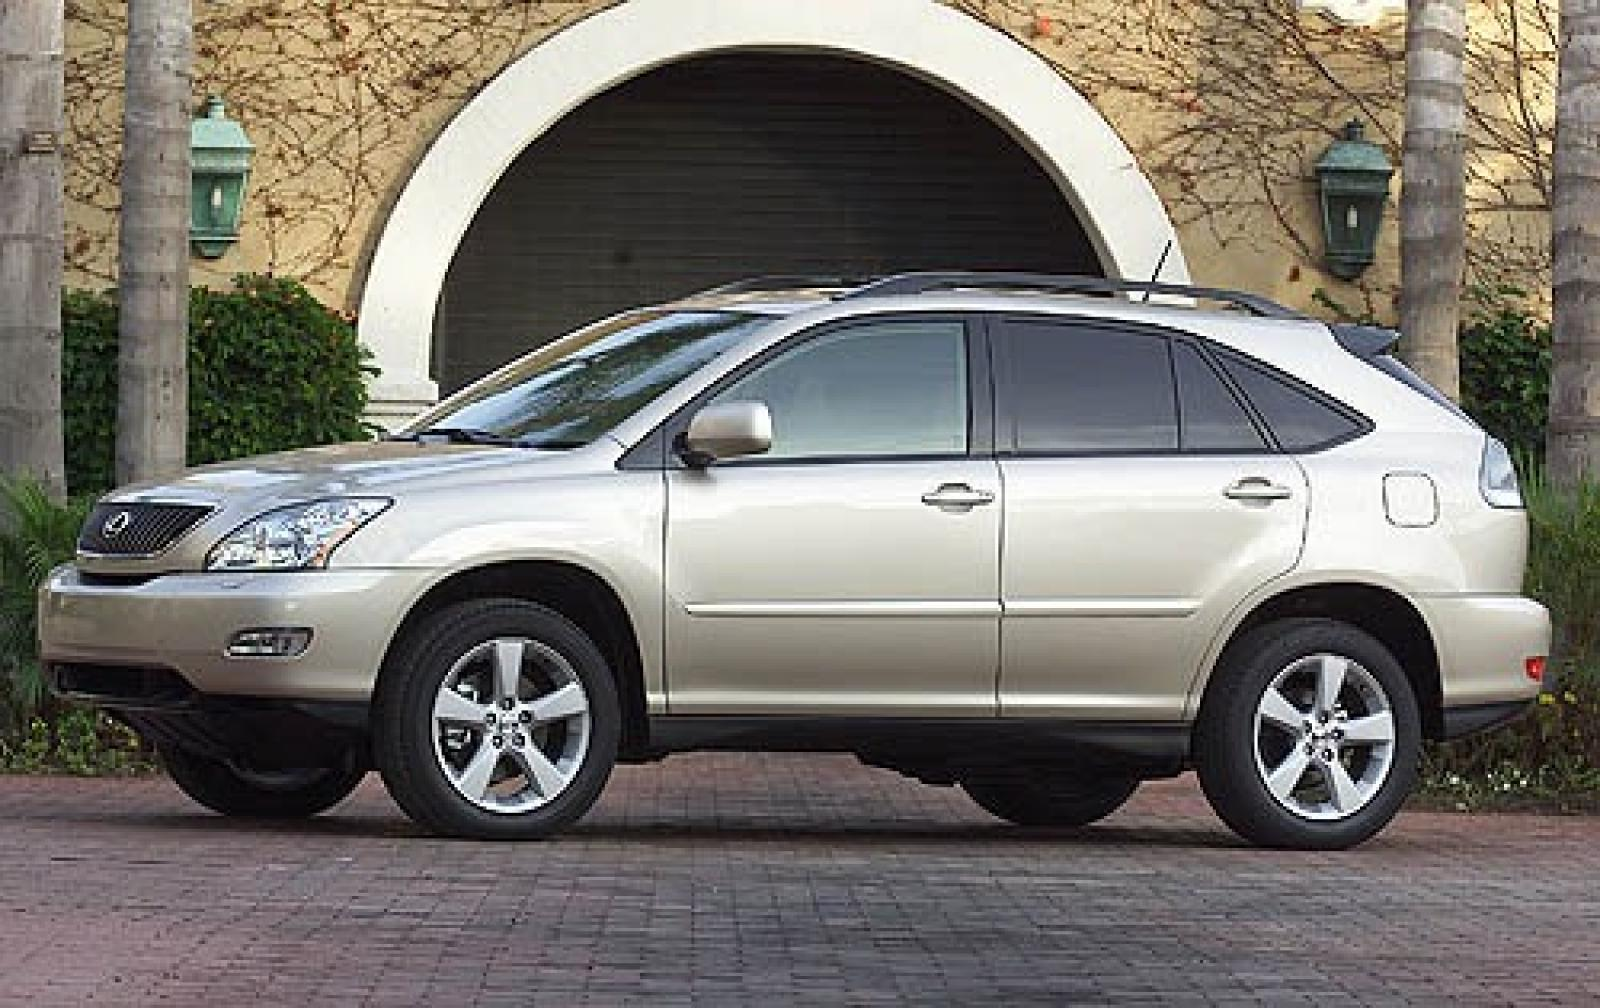 lexus crossover rx 330 with 2006 Lexus Suv Models on 2015 Lexus Is 350 F Sport further 2006 Lexus Suv Models together with Land Cruiser 80 Servis in addition Picture2 moreover Voiture Lexus Gs 450 H Interieur.